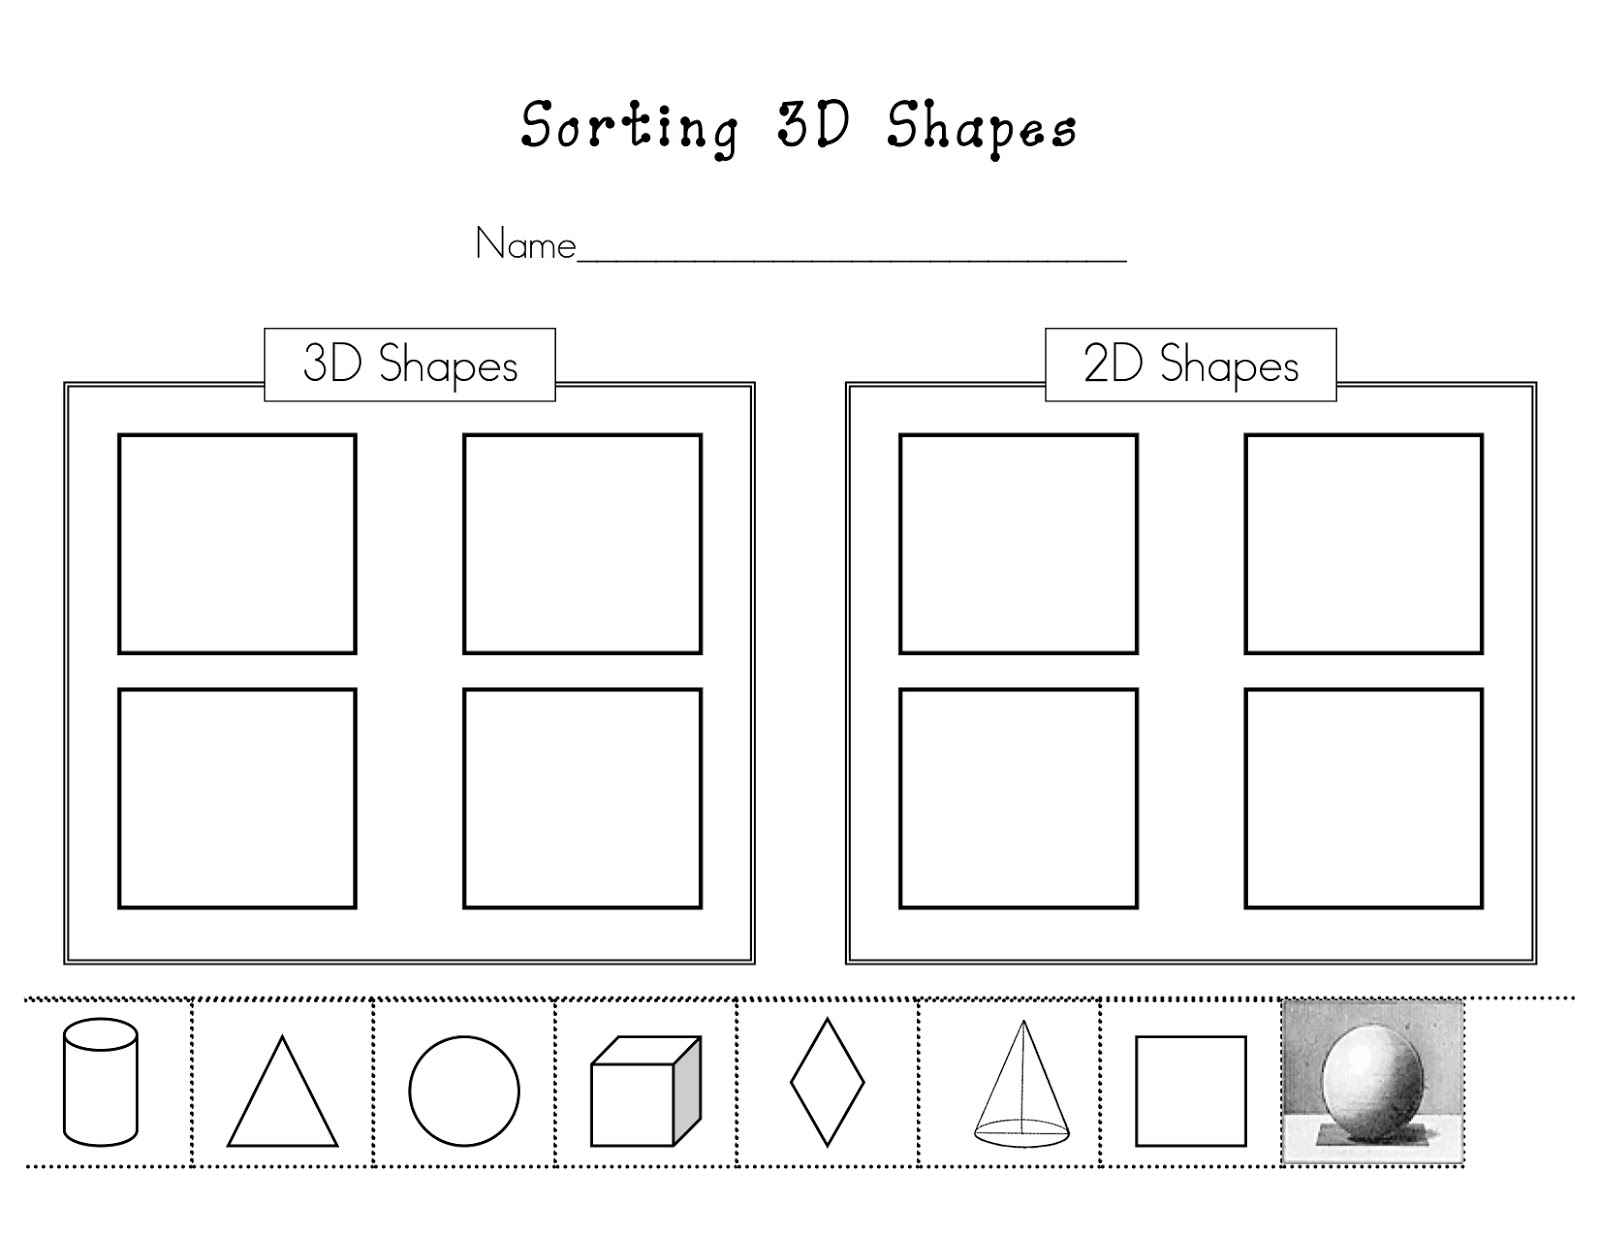 Sorting Worksheets For Kindergarten – Kindergarten Shapes Worksheet